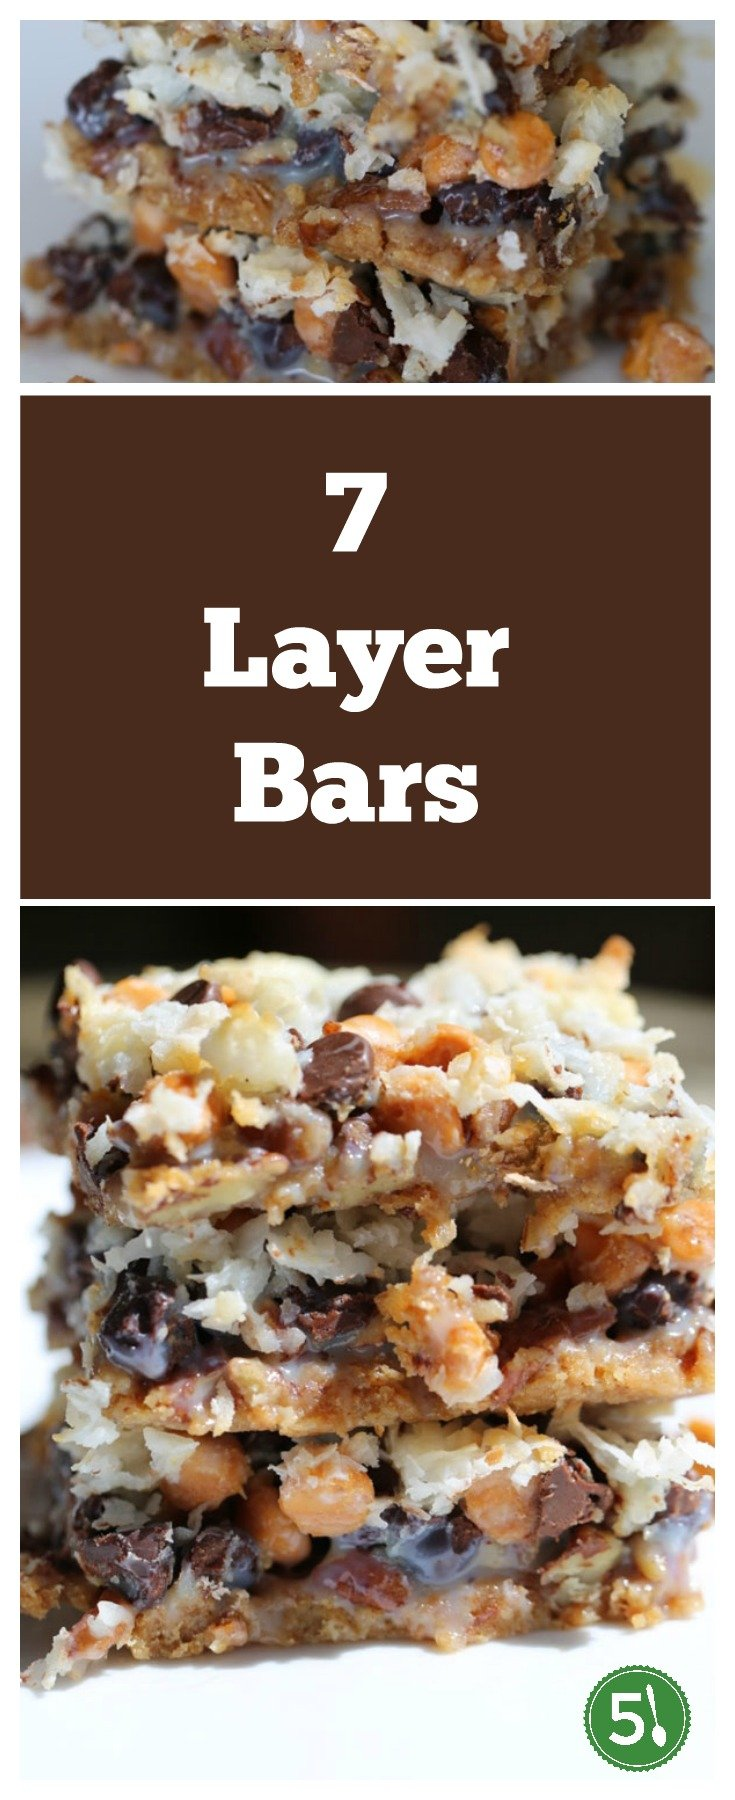 7 Layer Bars Recipe that feels like magic because it is beyond delectable, is easy to whip up, and smells heavenly while cooking.